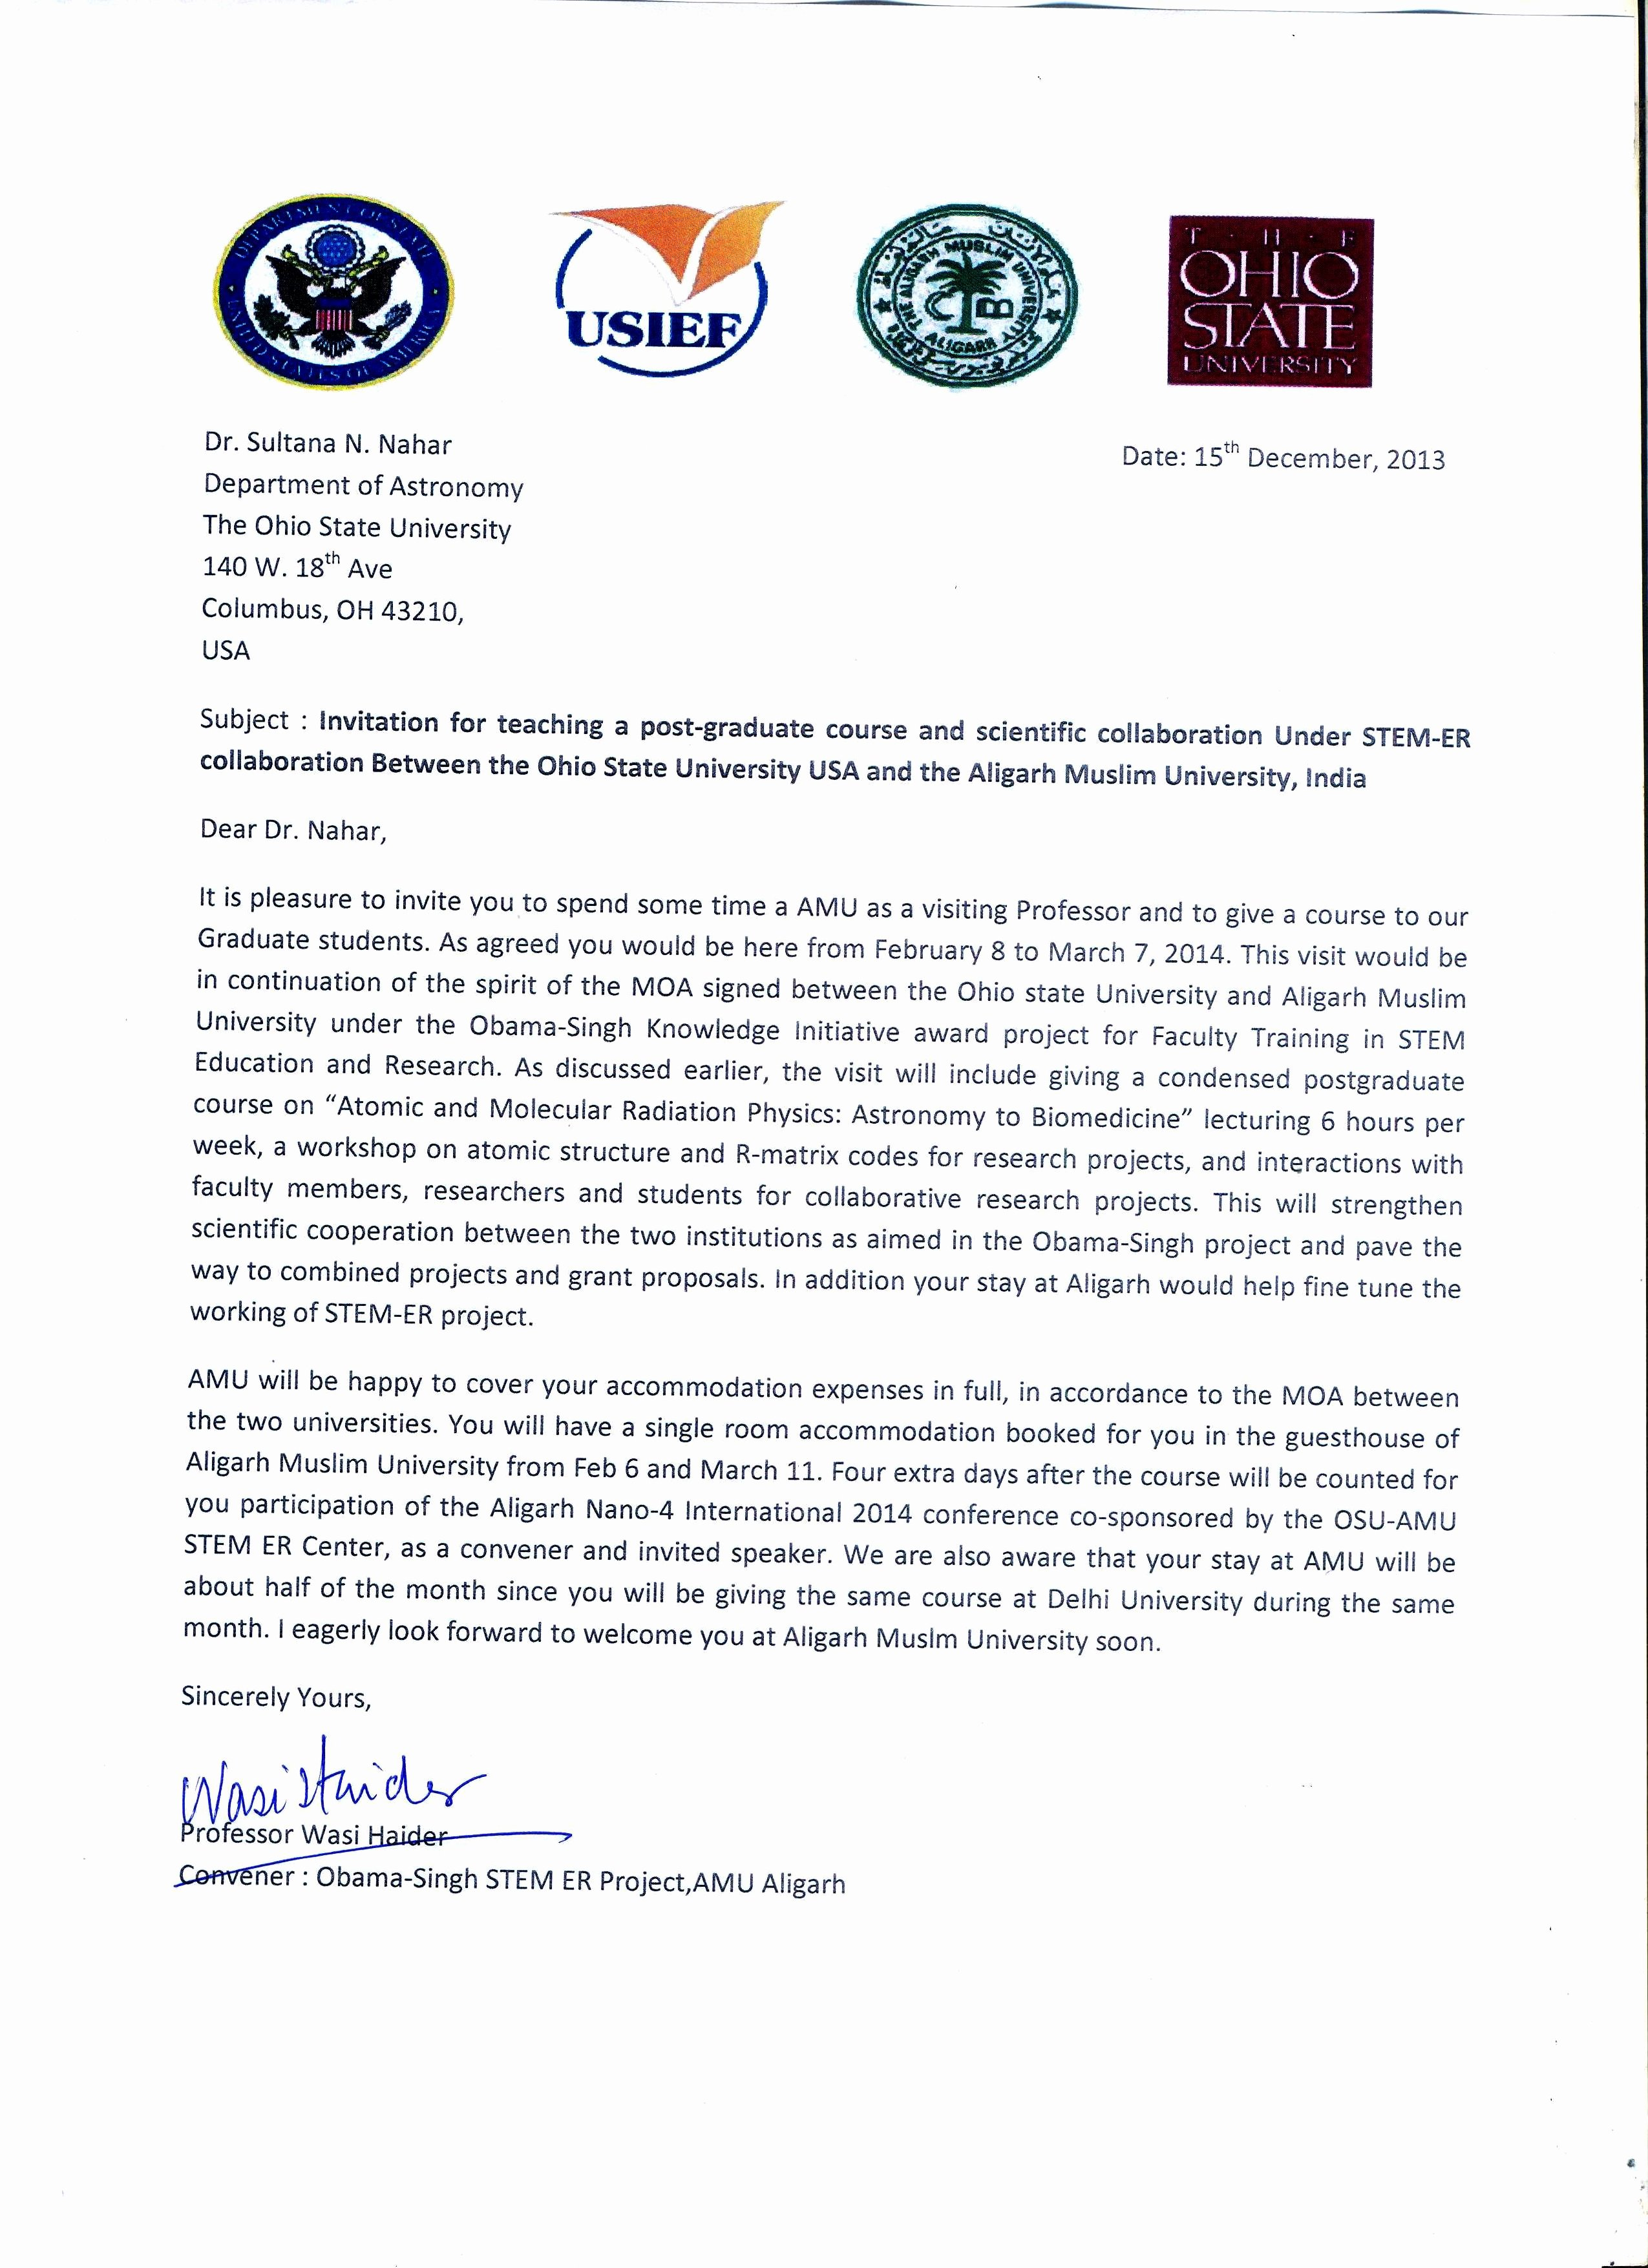 Nsf Letter Of Collaboration Template Unique Research Collaboration Invitation Letter